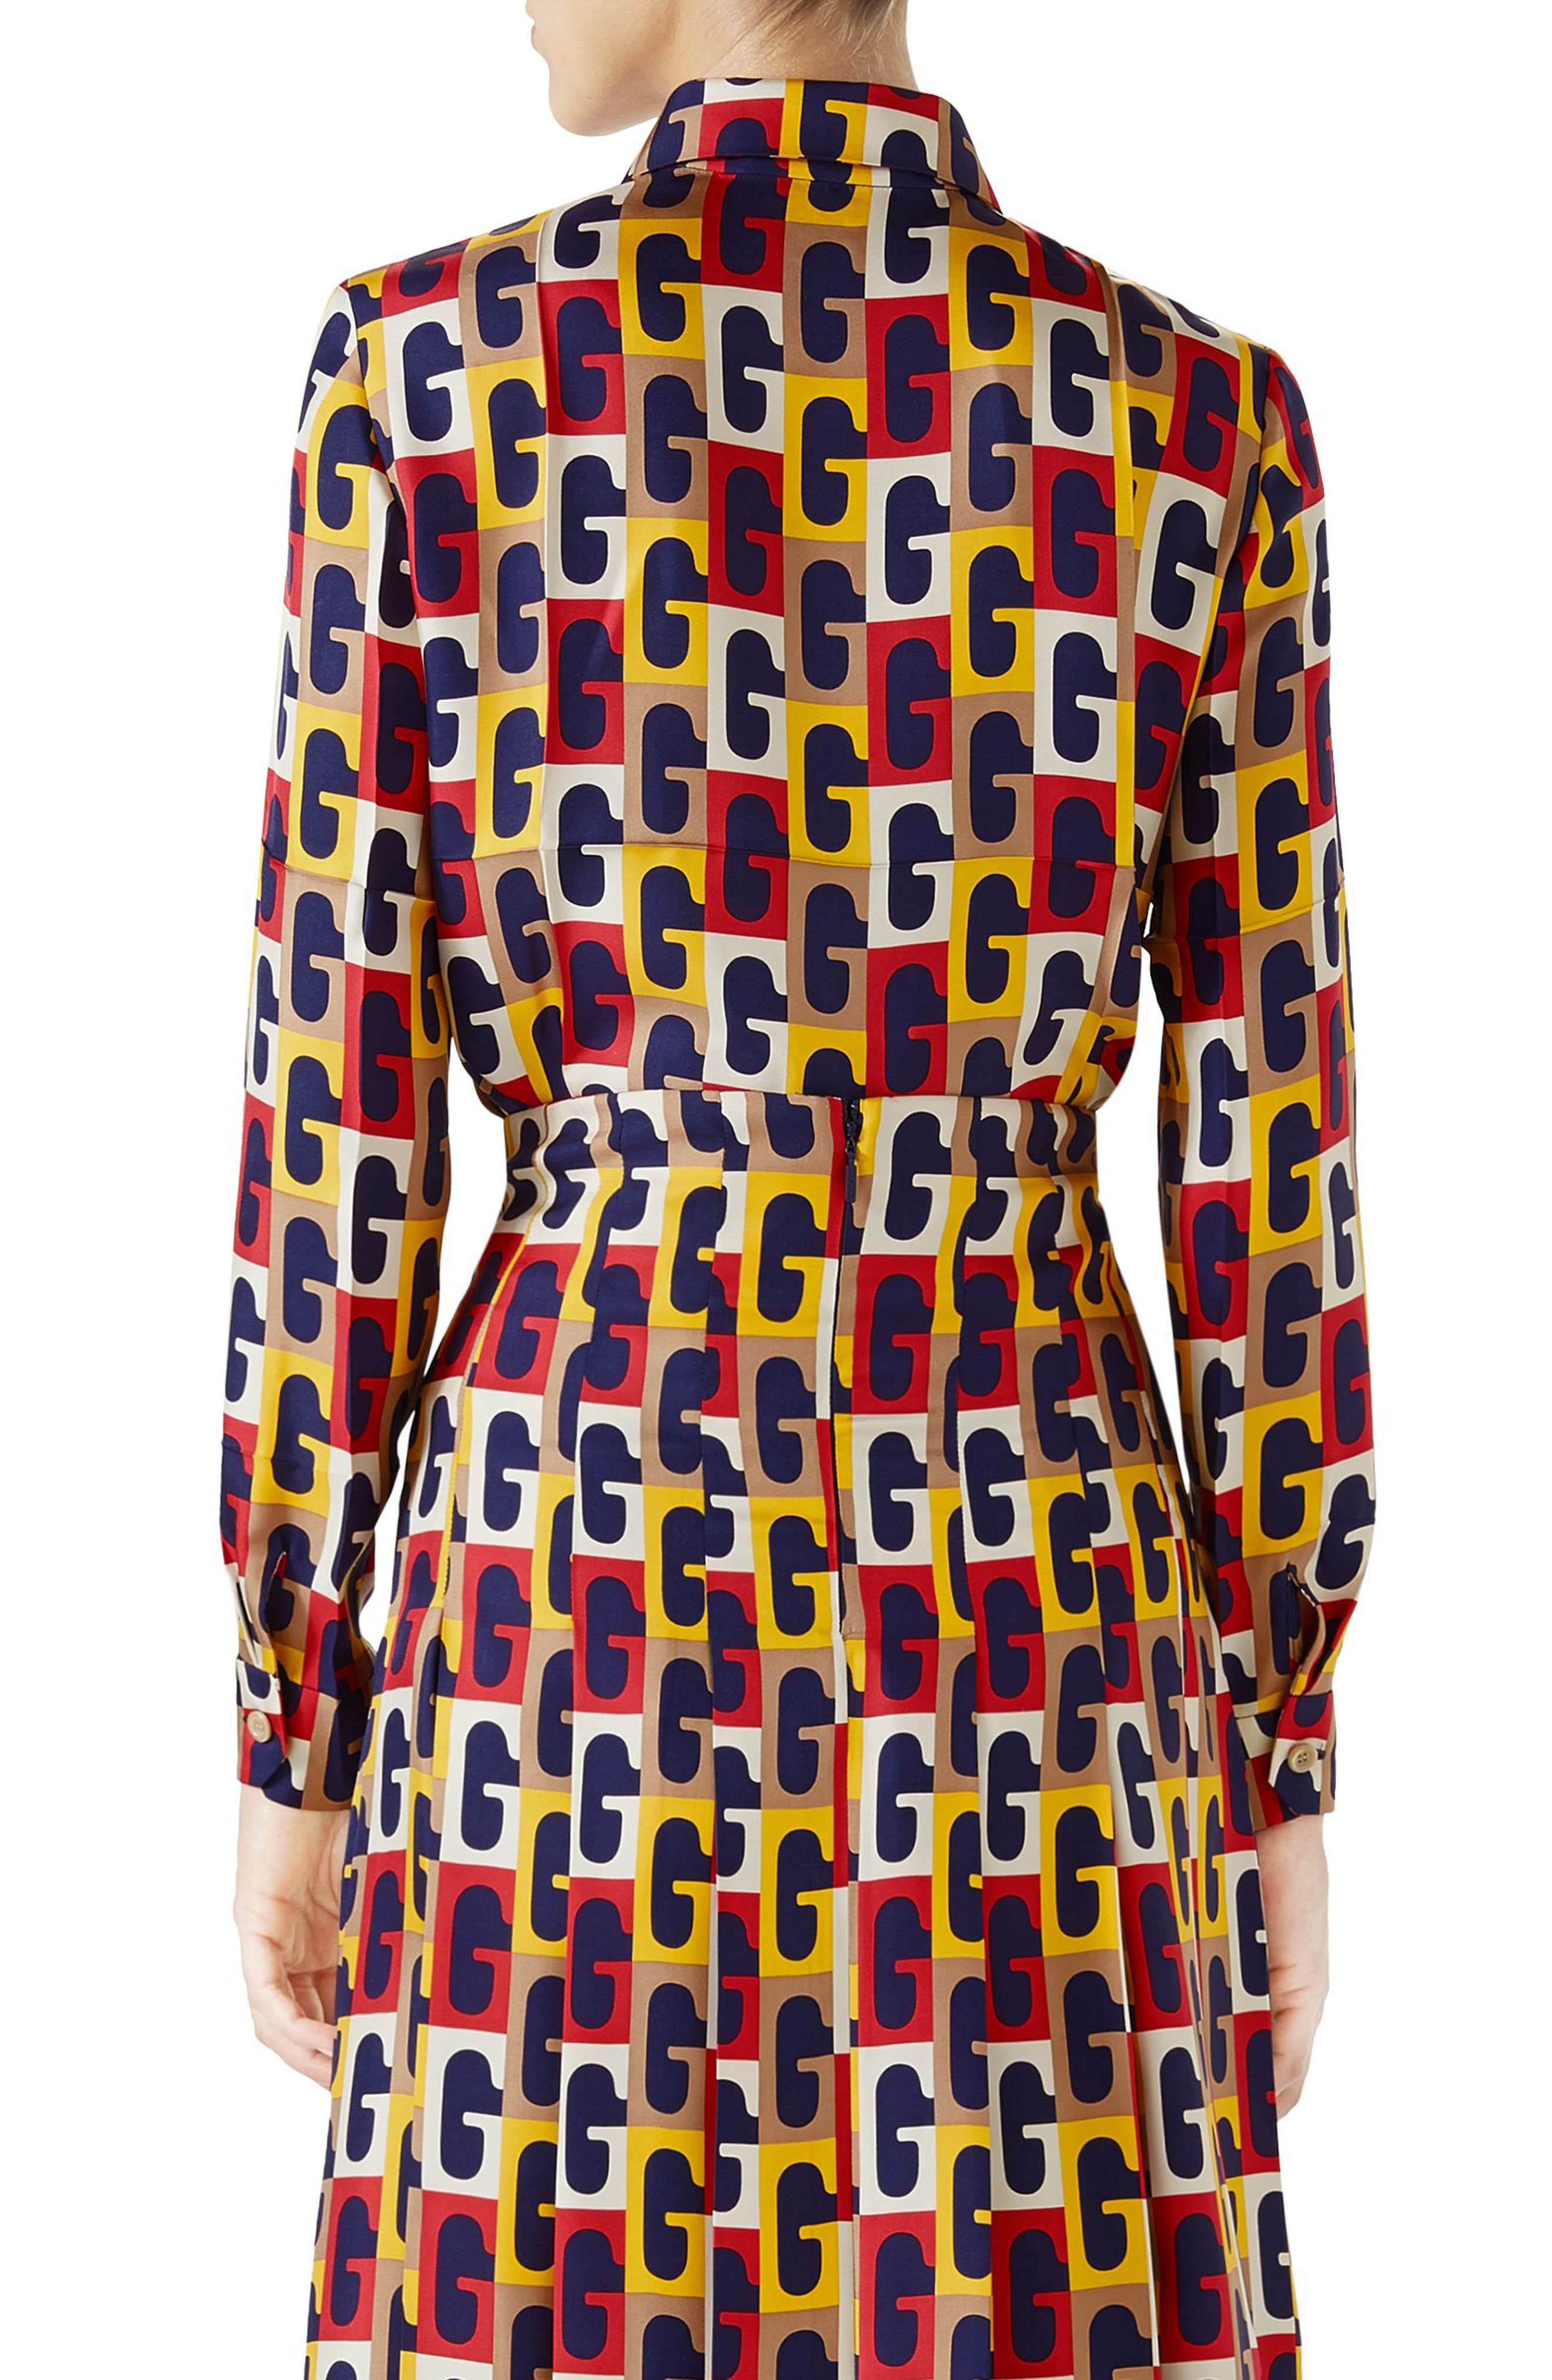 G-Sequence Print Silk Shirt,                             Alternate thumbnail 2, color,                             Ivory/ Yellow/ Red Print